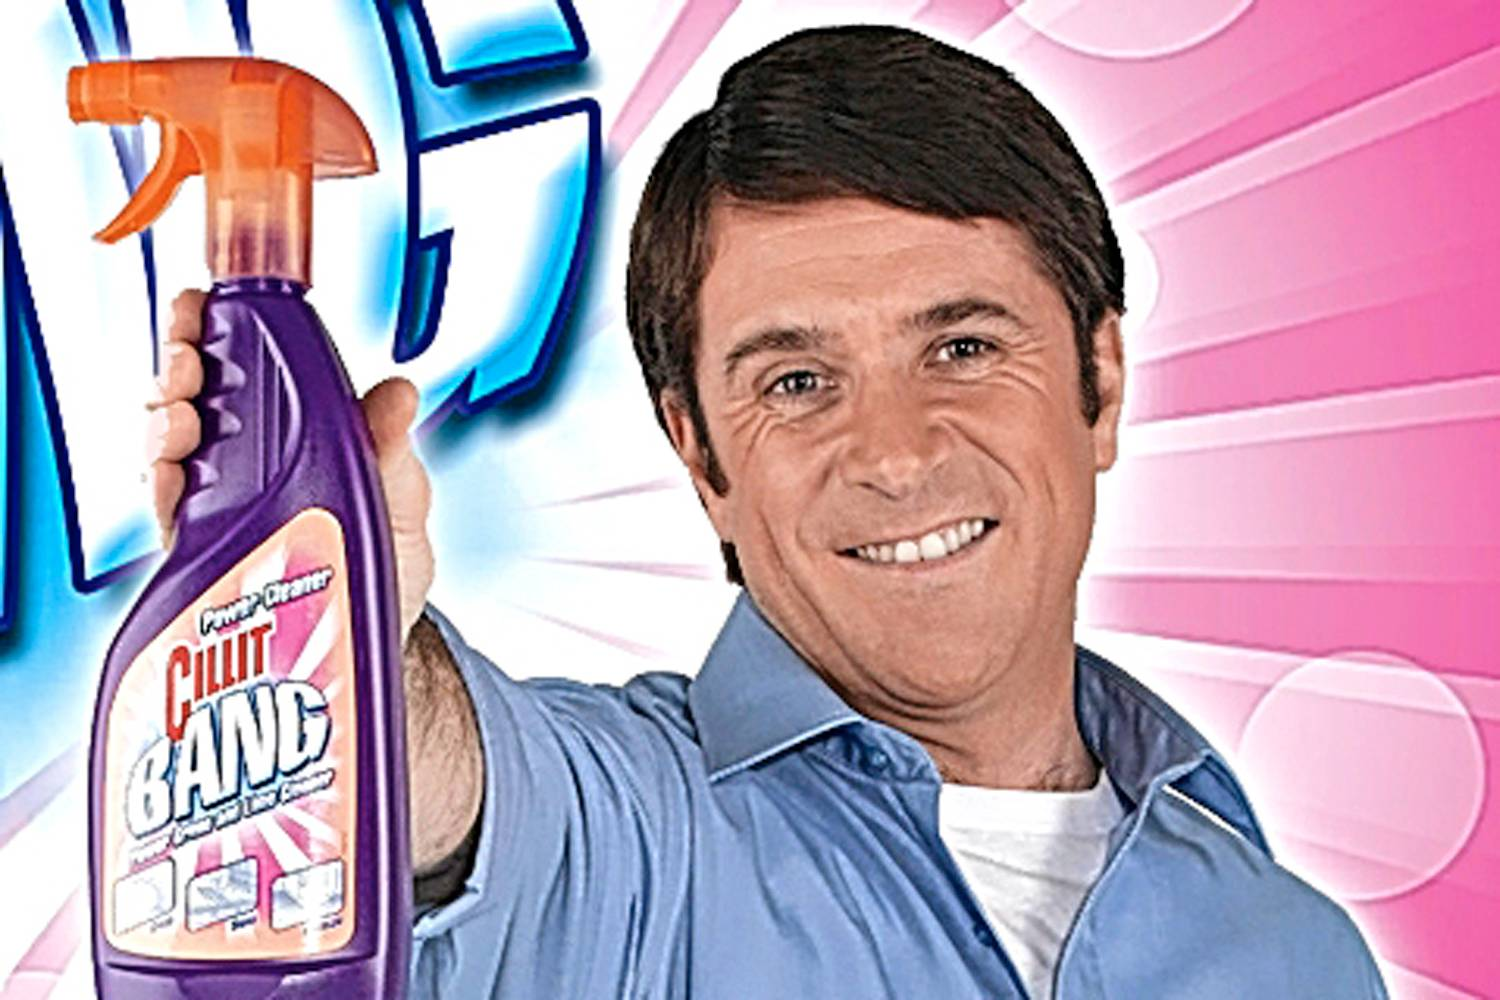 The Rise And Fall Of Barry Scott, A Cleaning Product Icon cillit bang